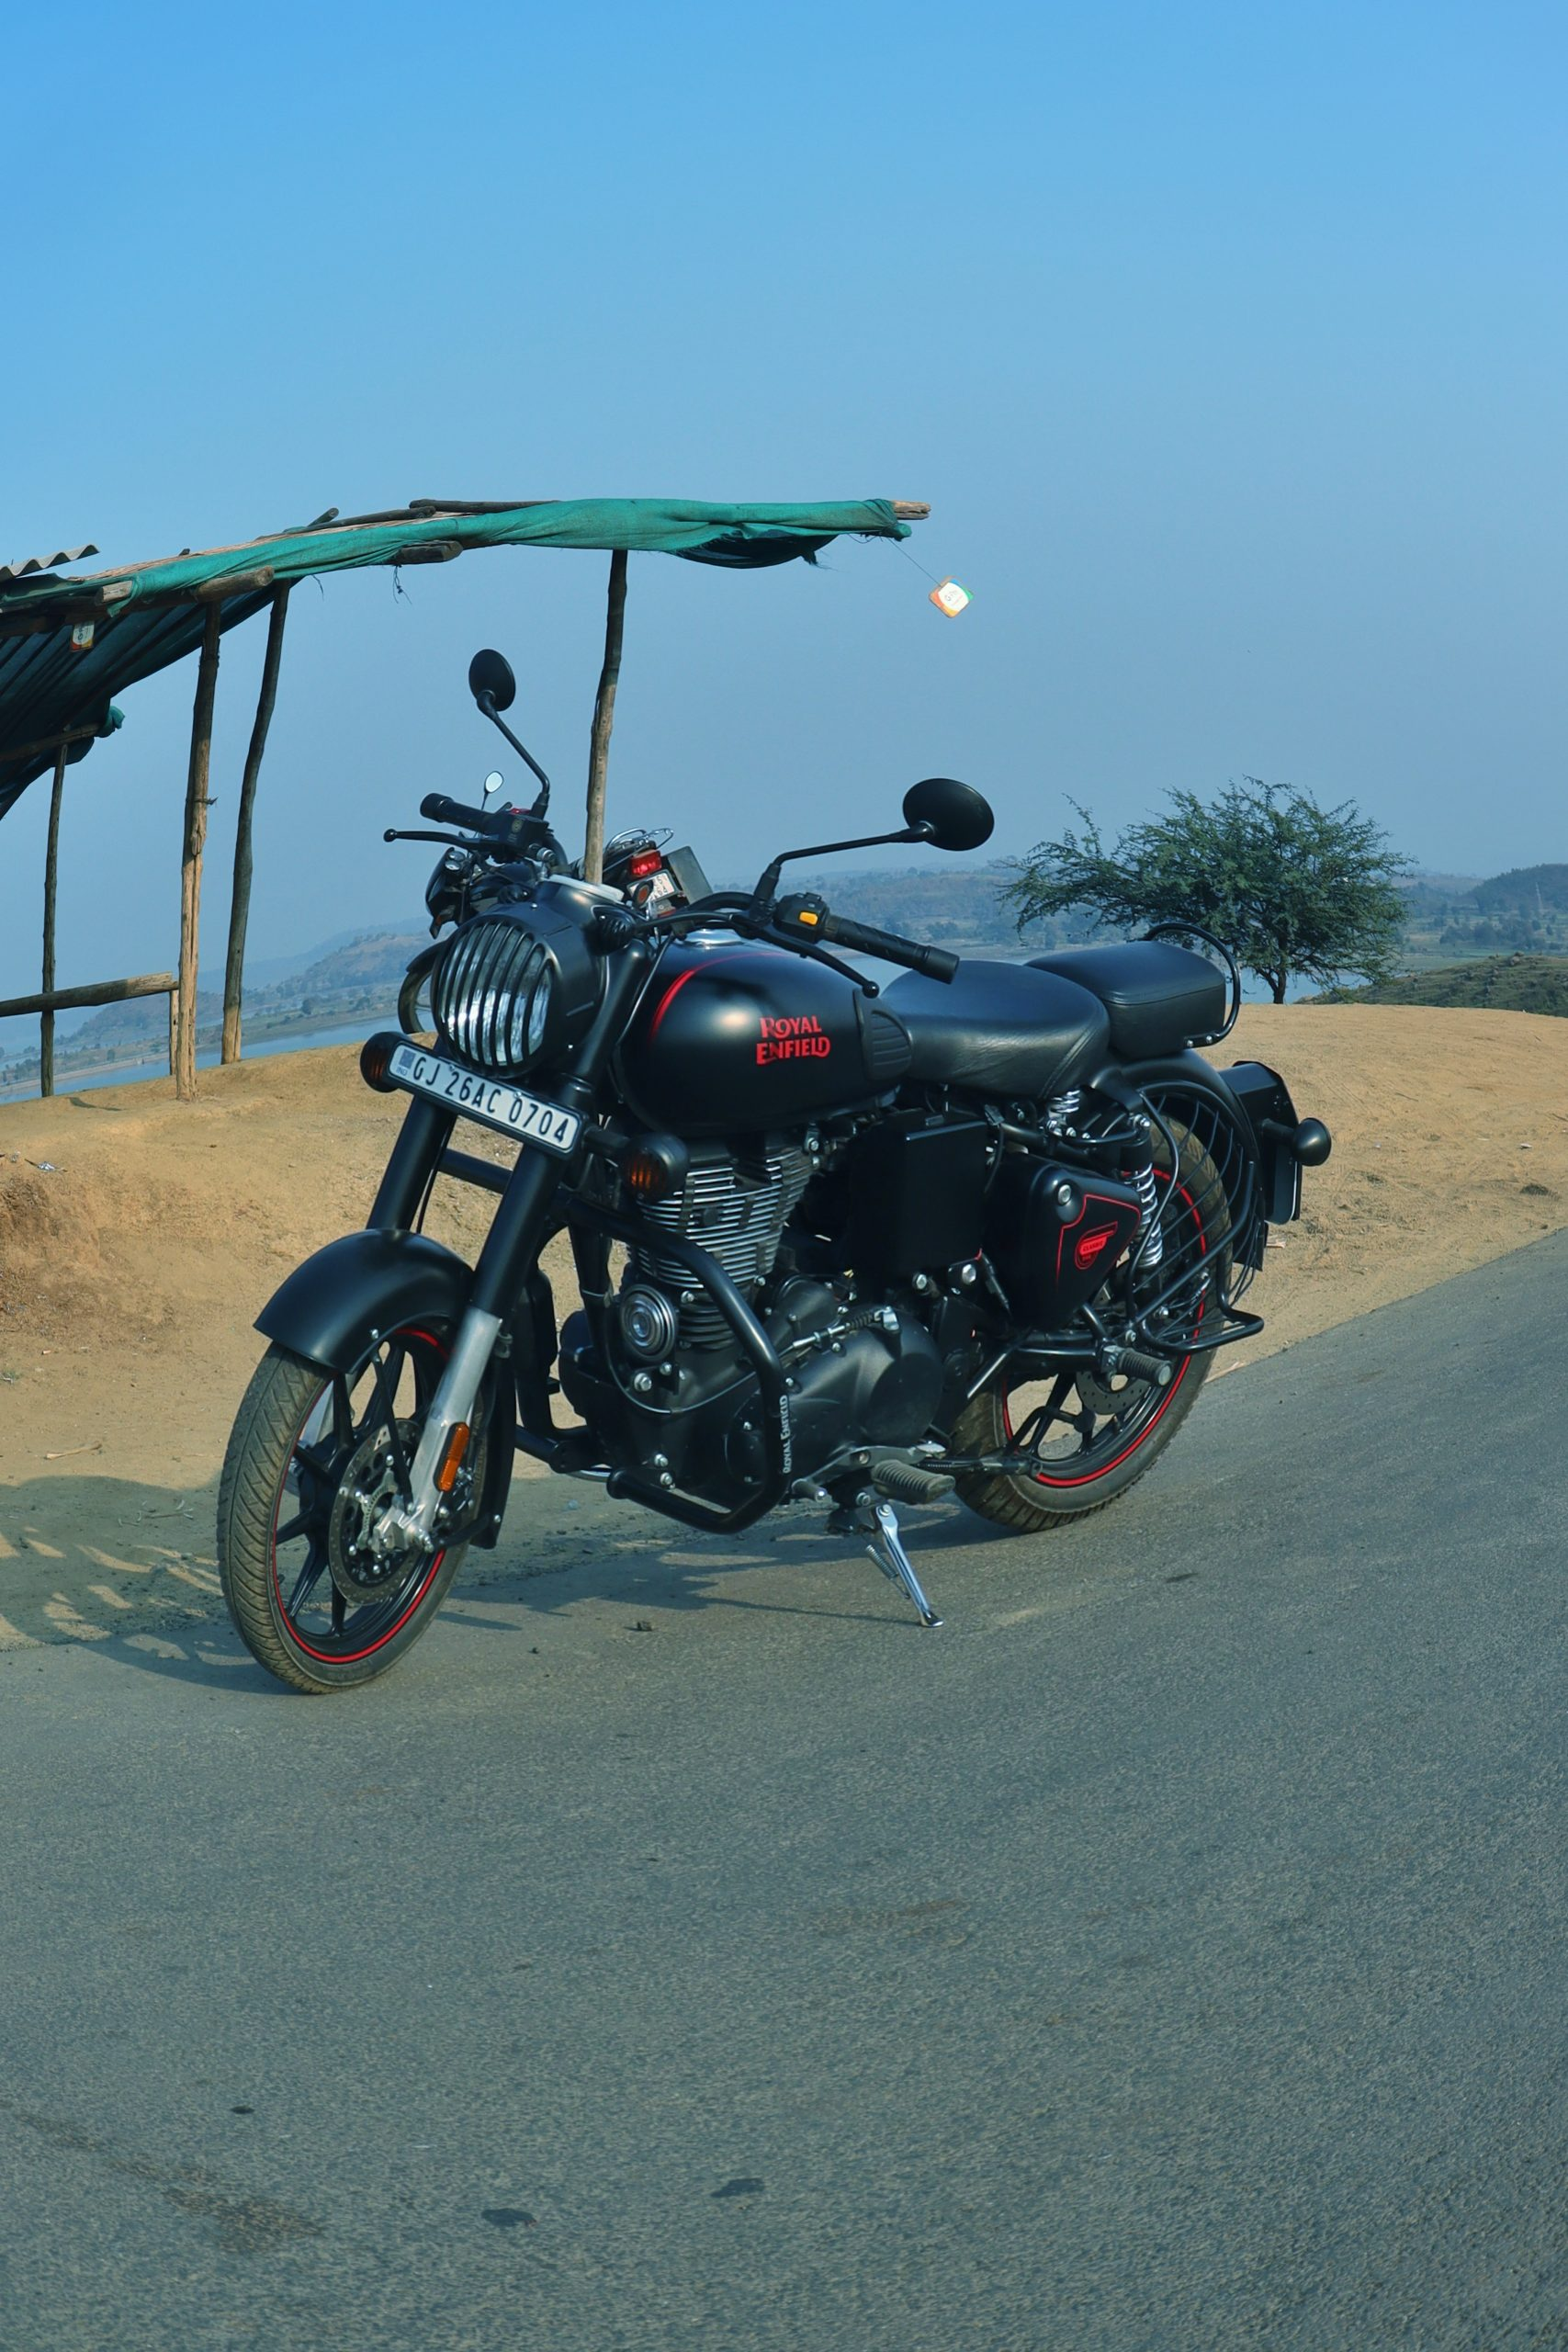 Royal Enfield on the road